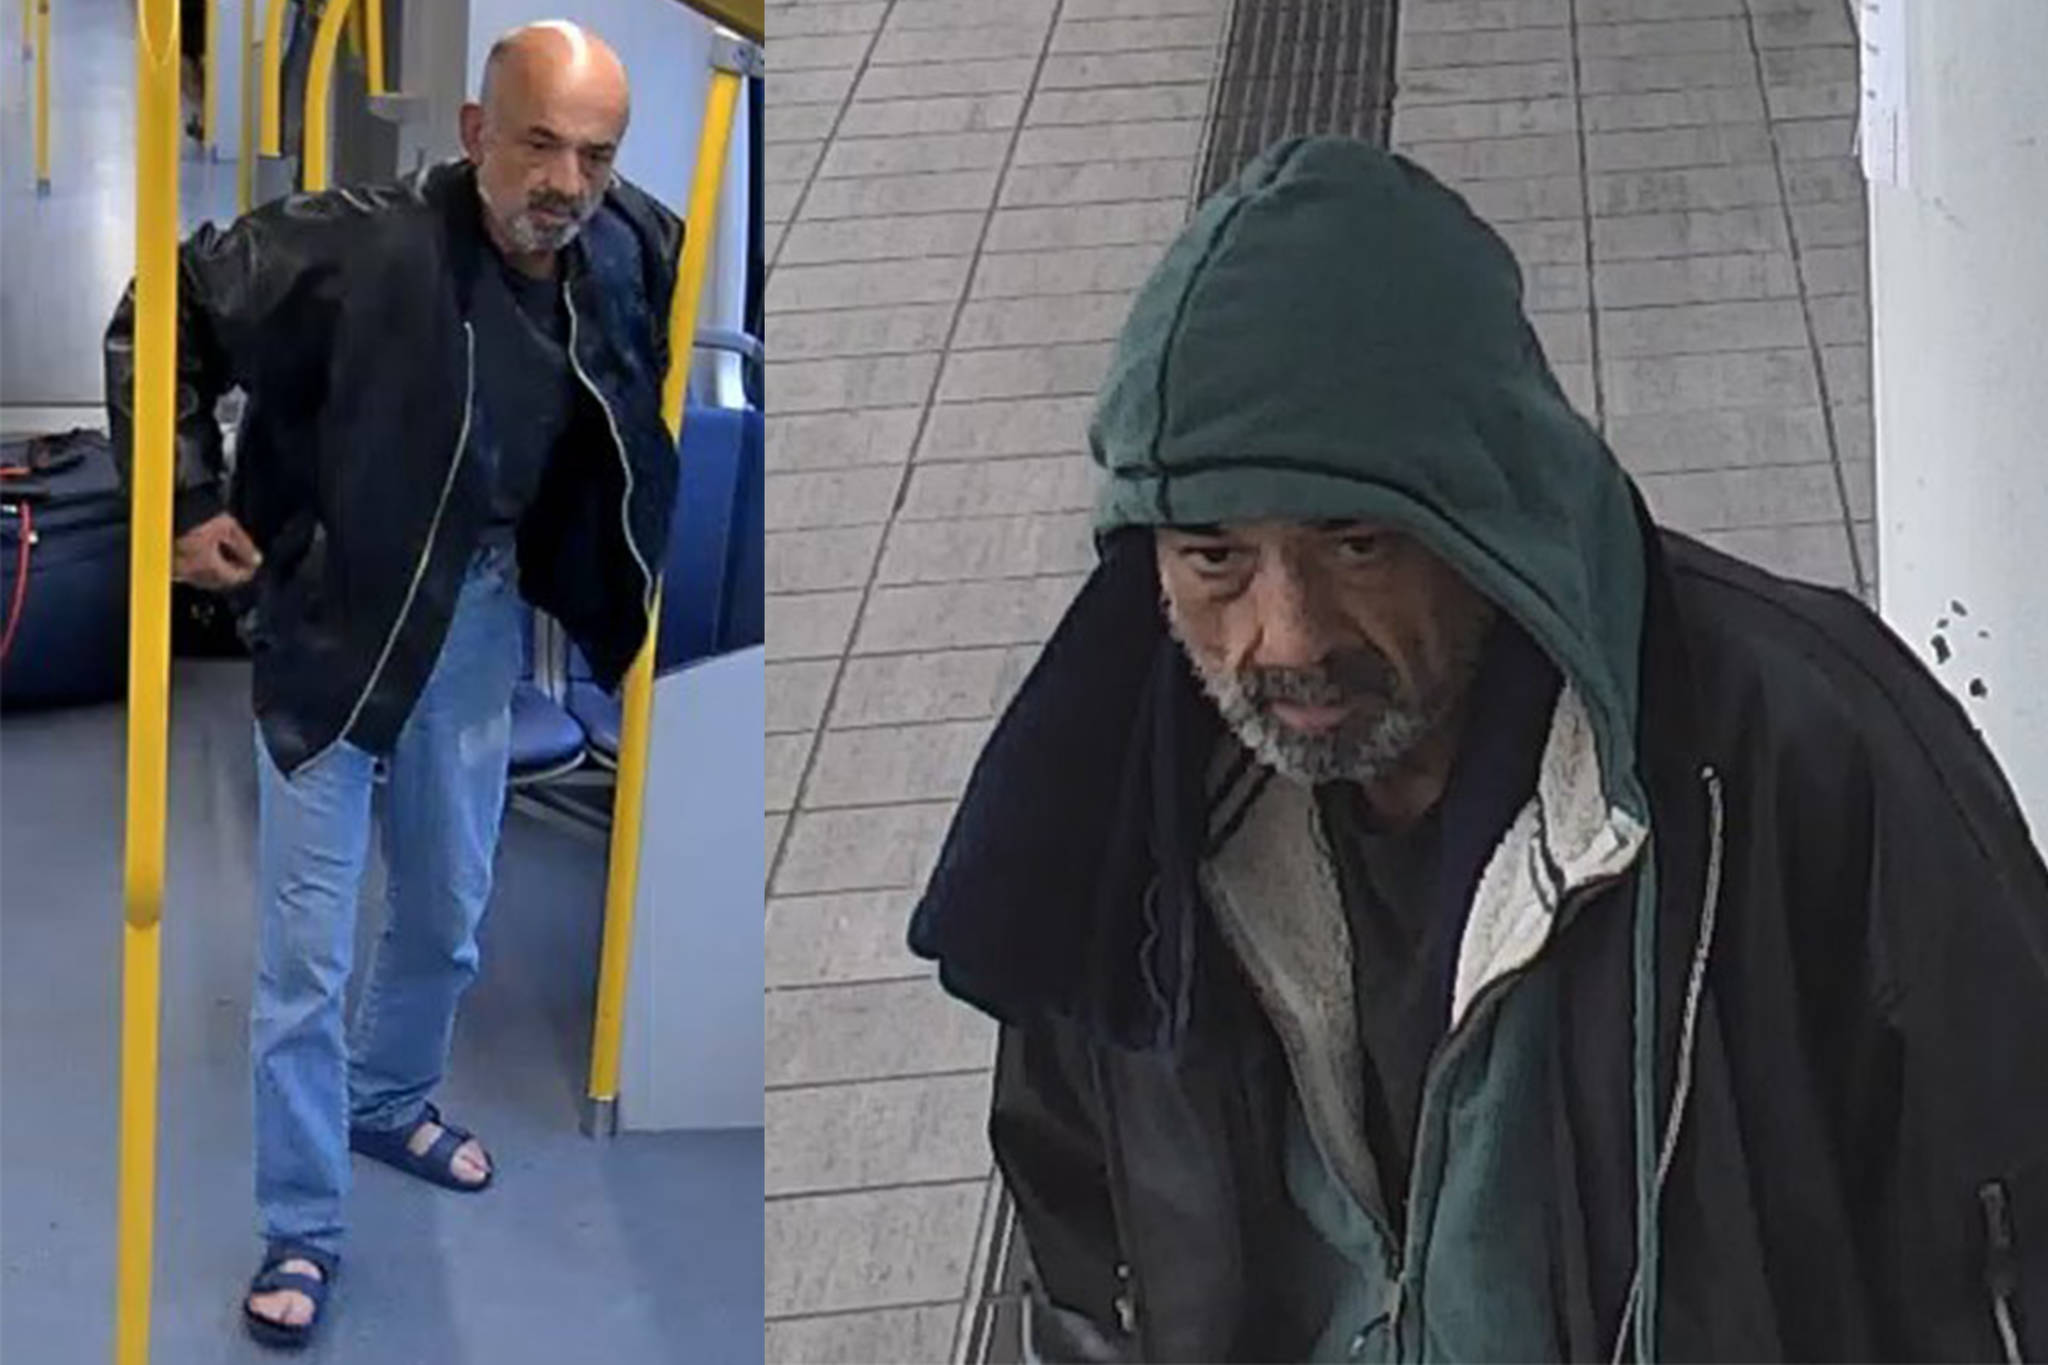 The man picture here is wanted in connection to an alleged assault on a SkyTrain Saturday, April 25, 2020. (Metro Vancouver Transit Police)